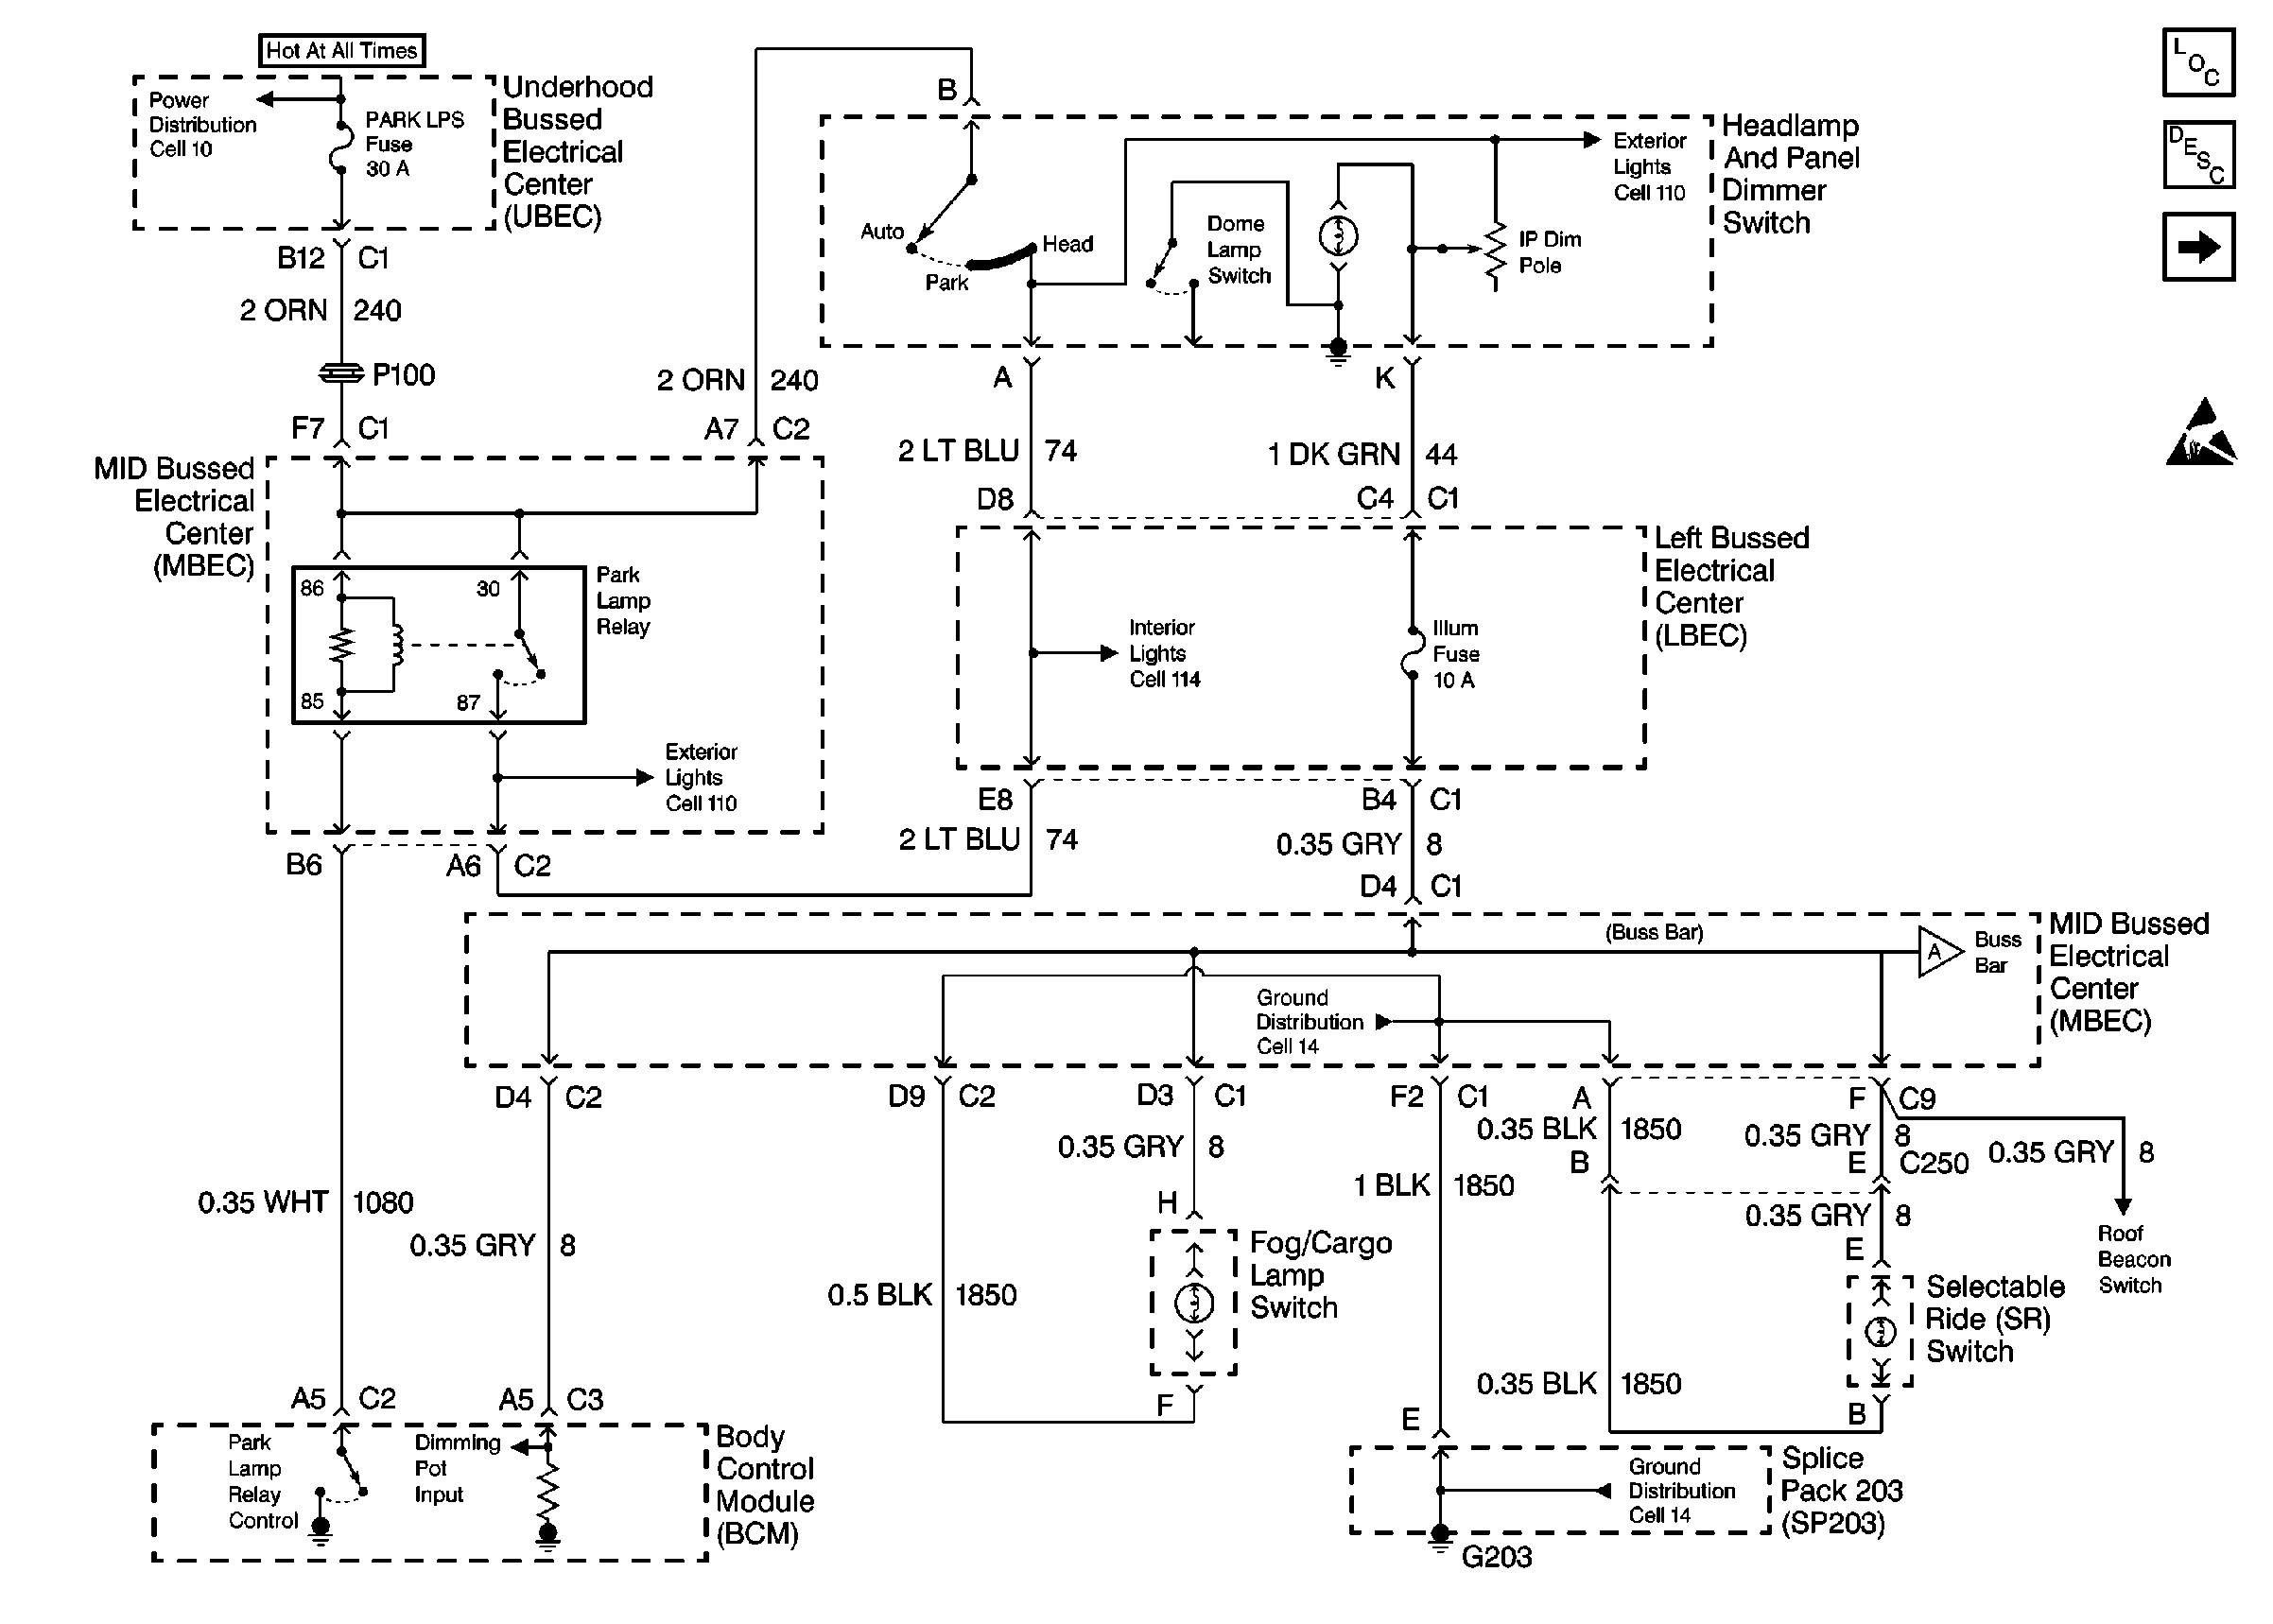 1987 Chevy K2500 Fuse Box Diagram Wiring Schematic Auto Electrical Audi Q7 Headlight Harness